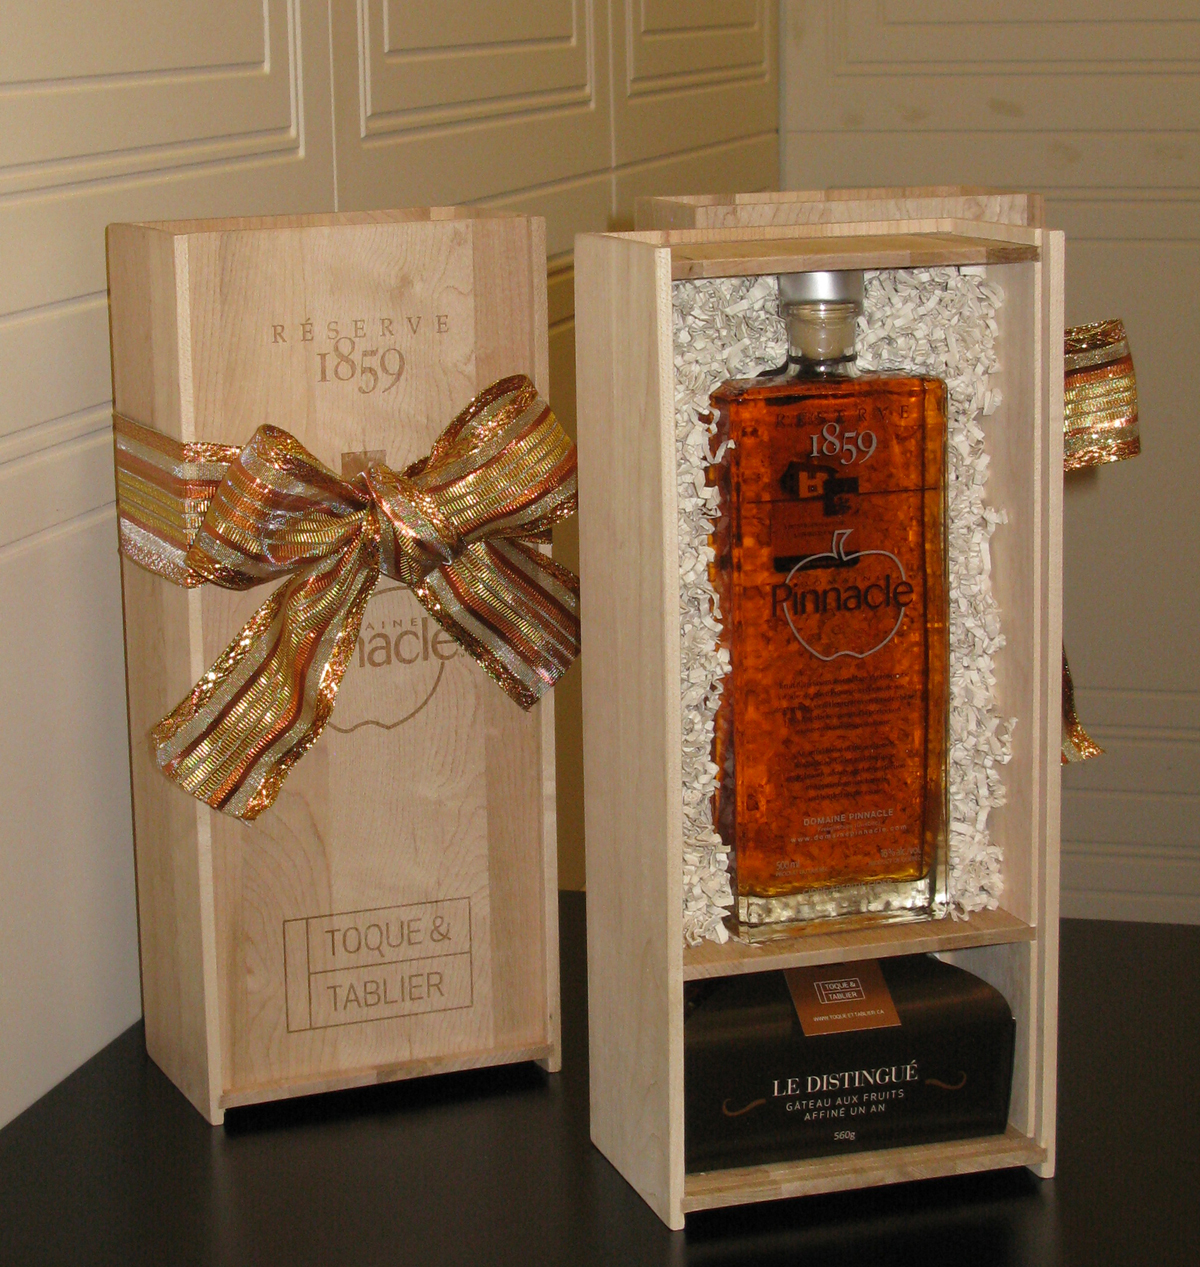 "Domaine Pinnacle Réserve 1859 ice cider-apple brandy with Toque & Tablier's limited edition fruitcake ""Le Distingué"""